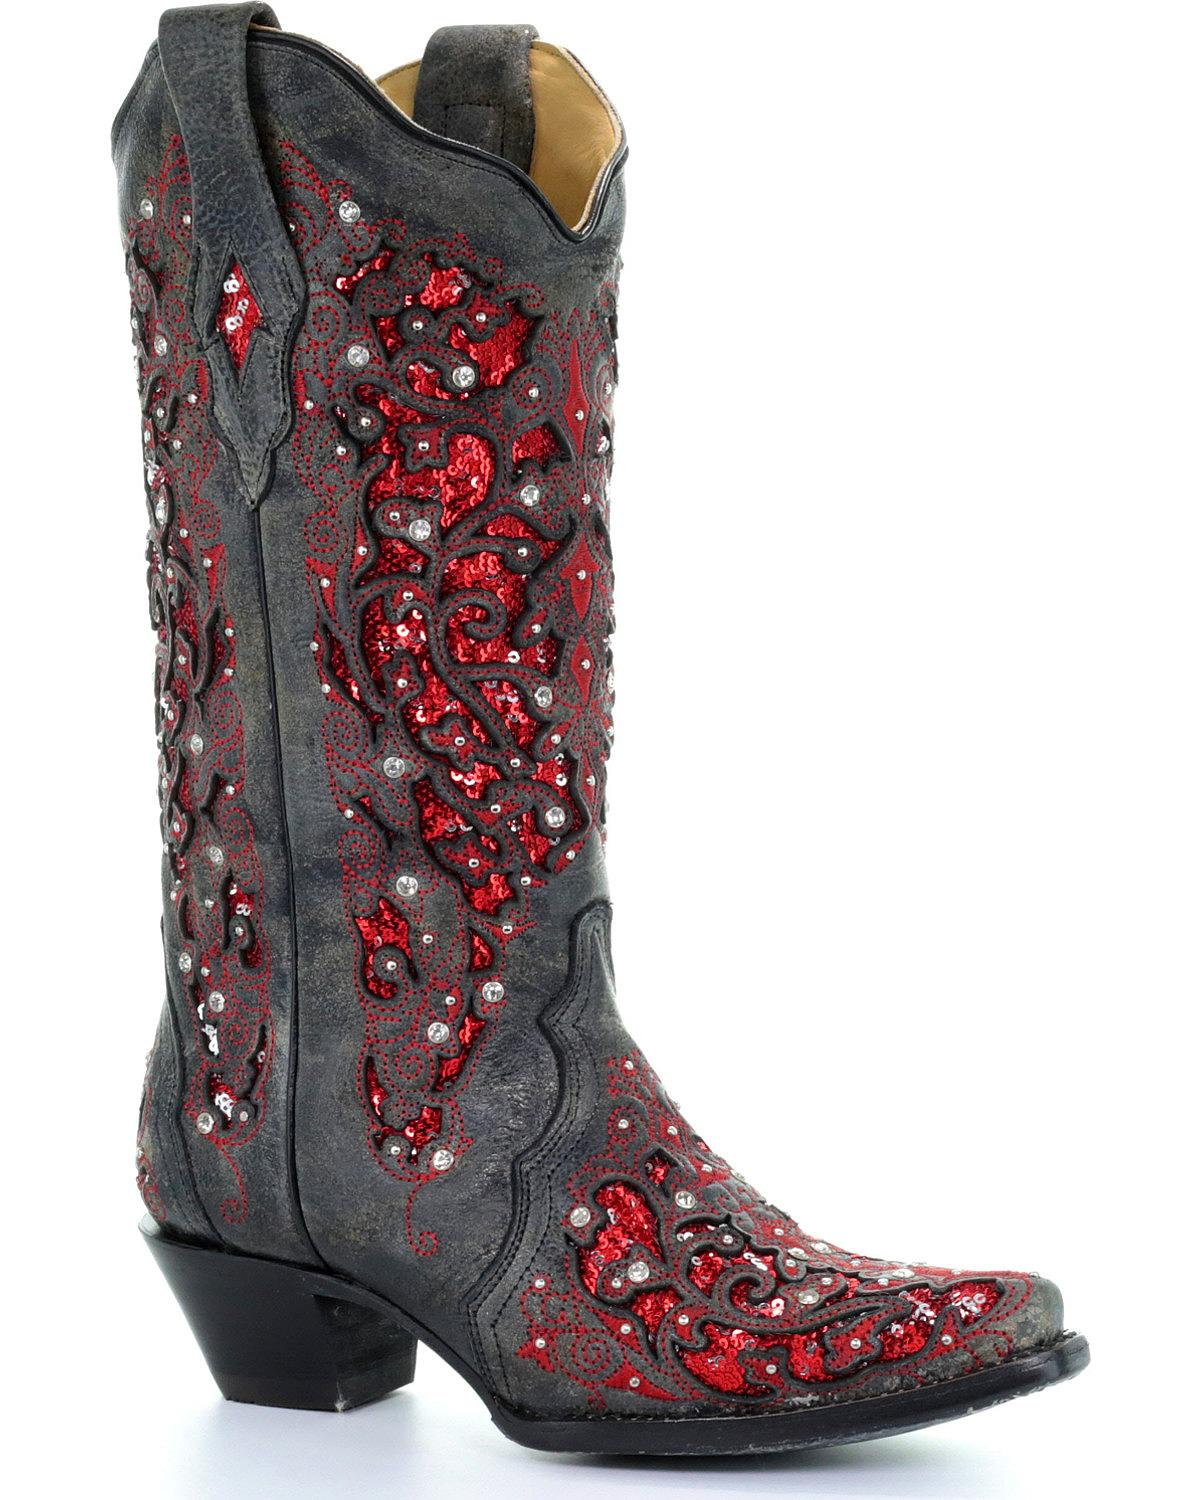 042e859ace7 Women s Tooled   Inlay Cowboy Boots